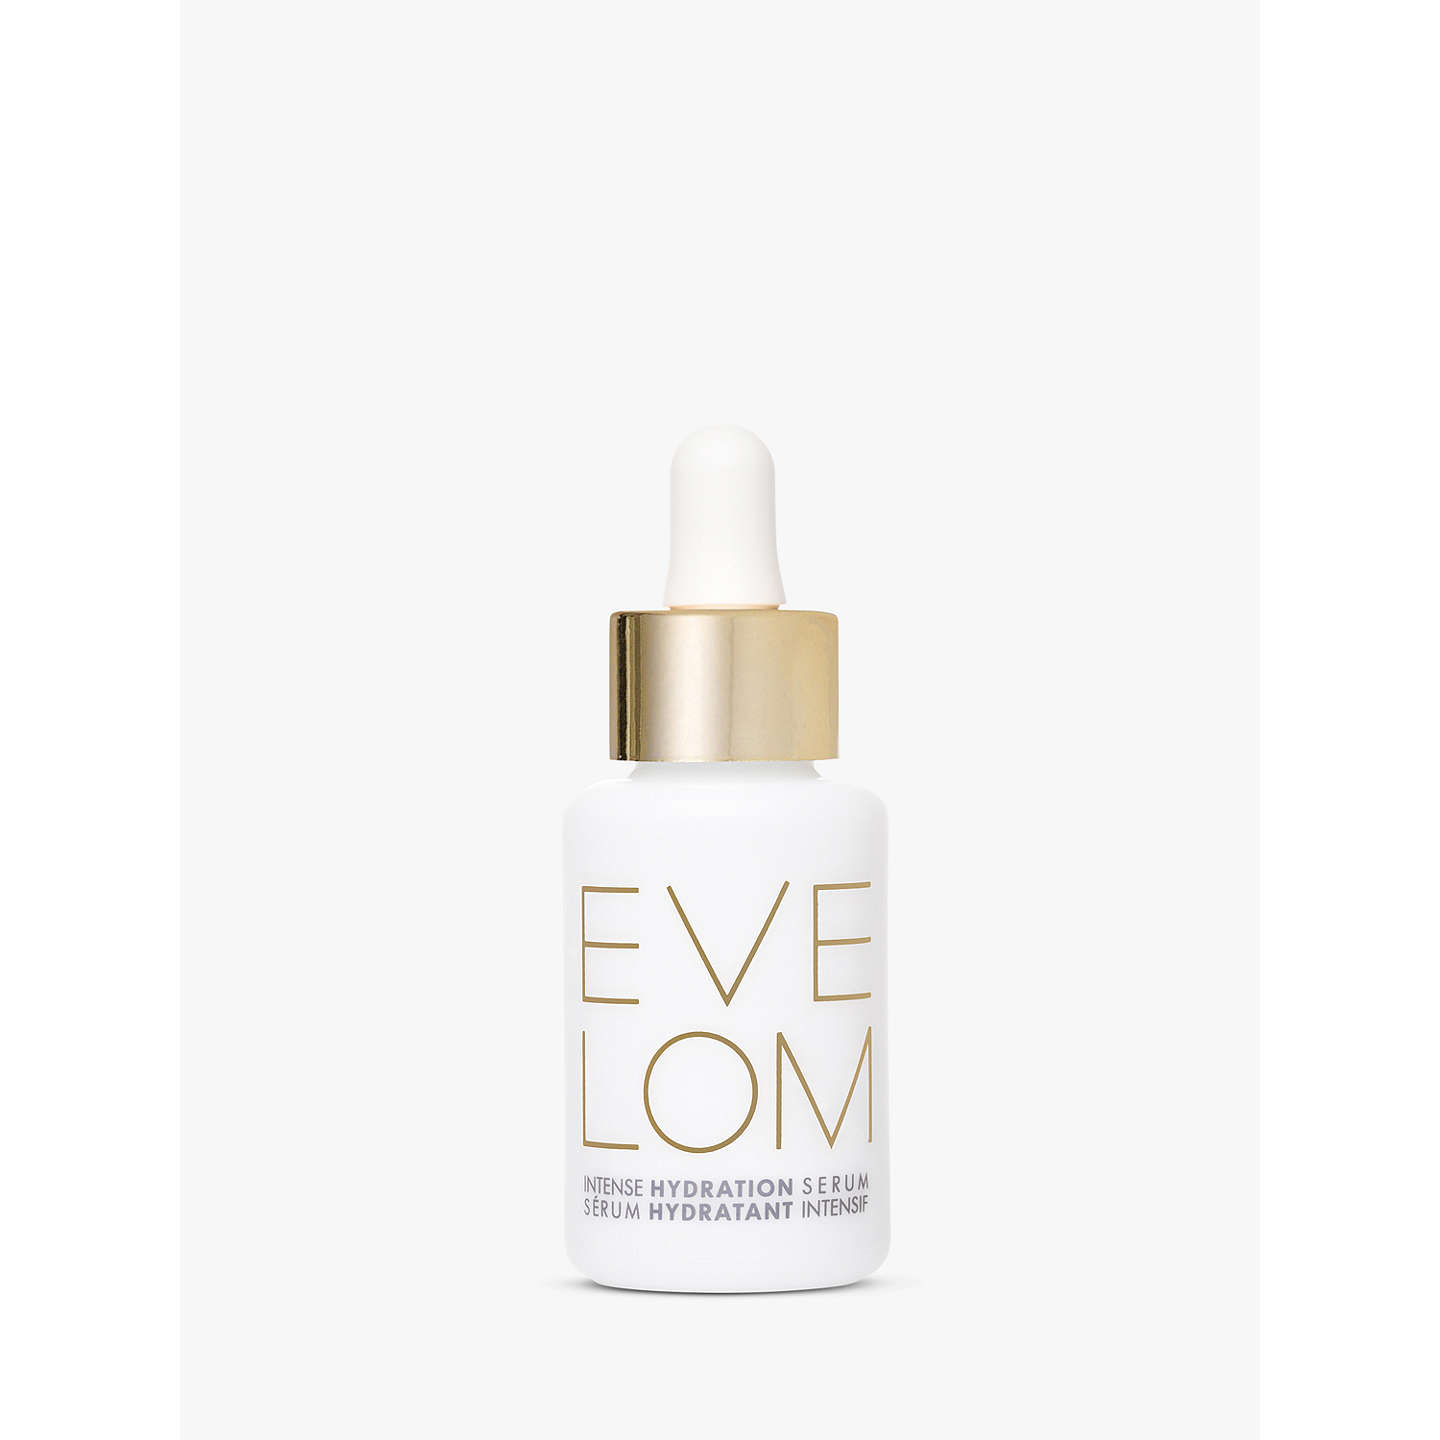 BuyEve Lom Intense Hydration Serum, 30ml Online at johnlewis.com